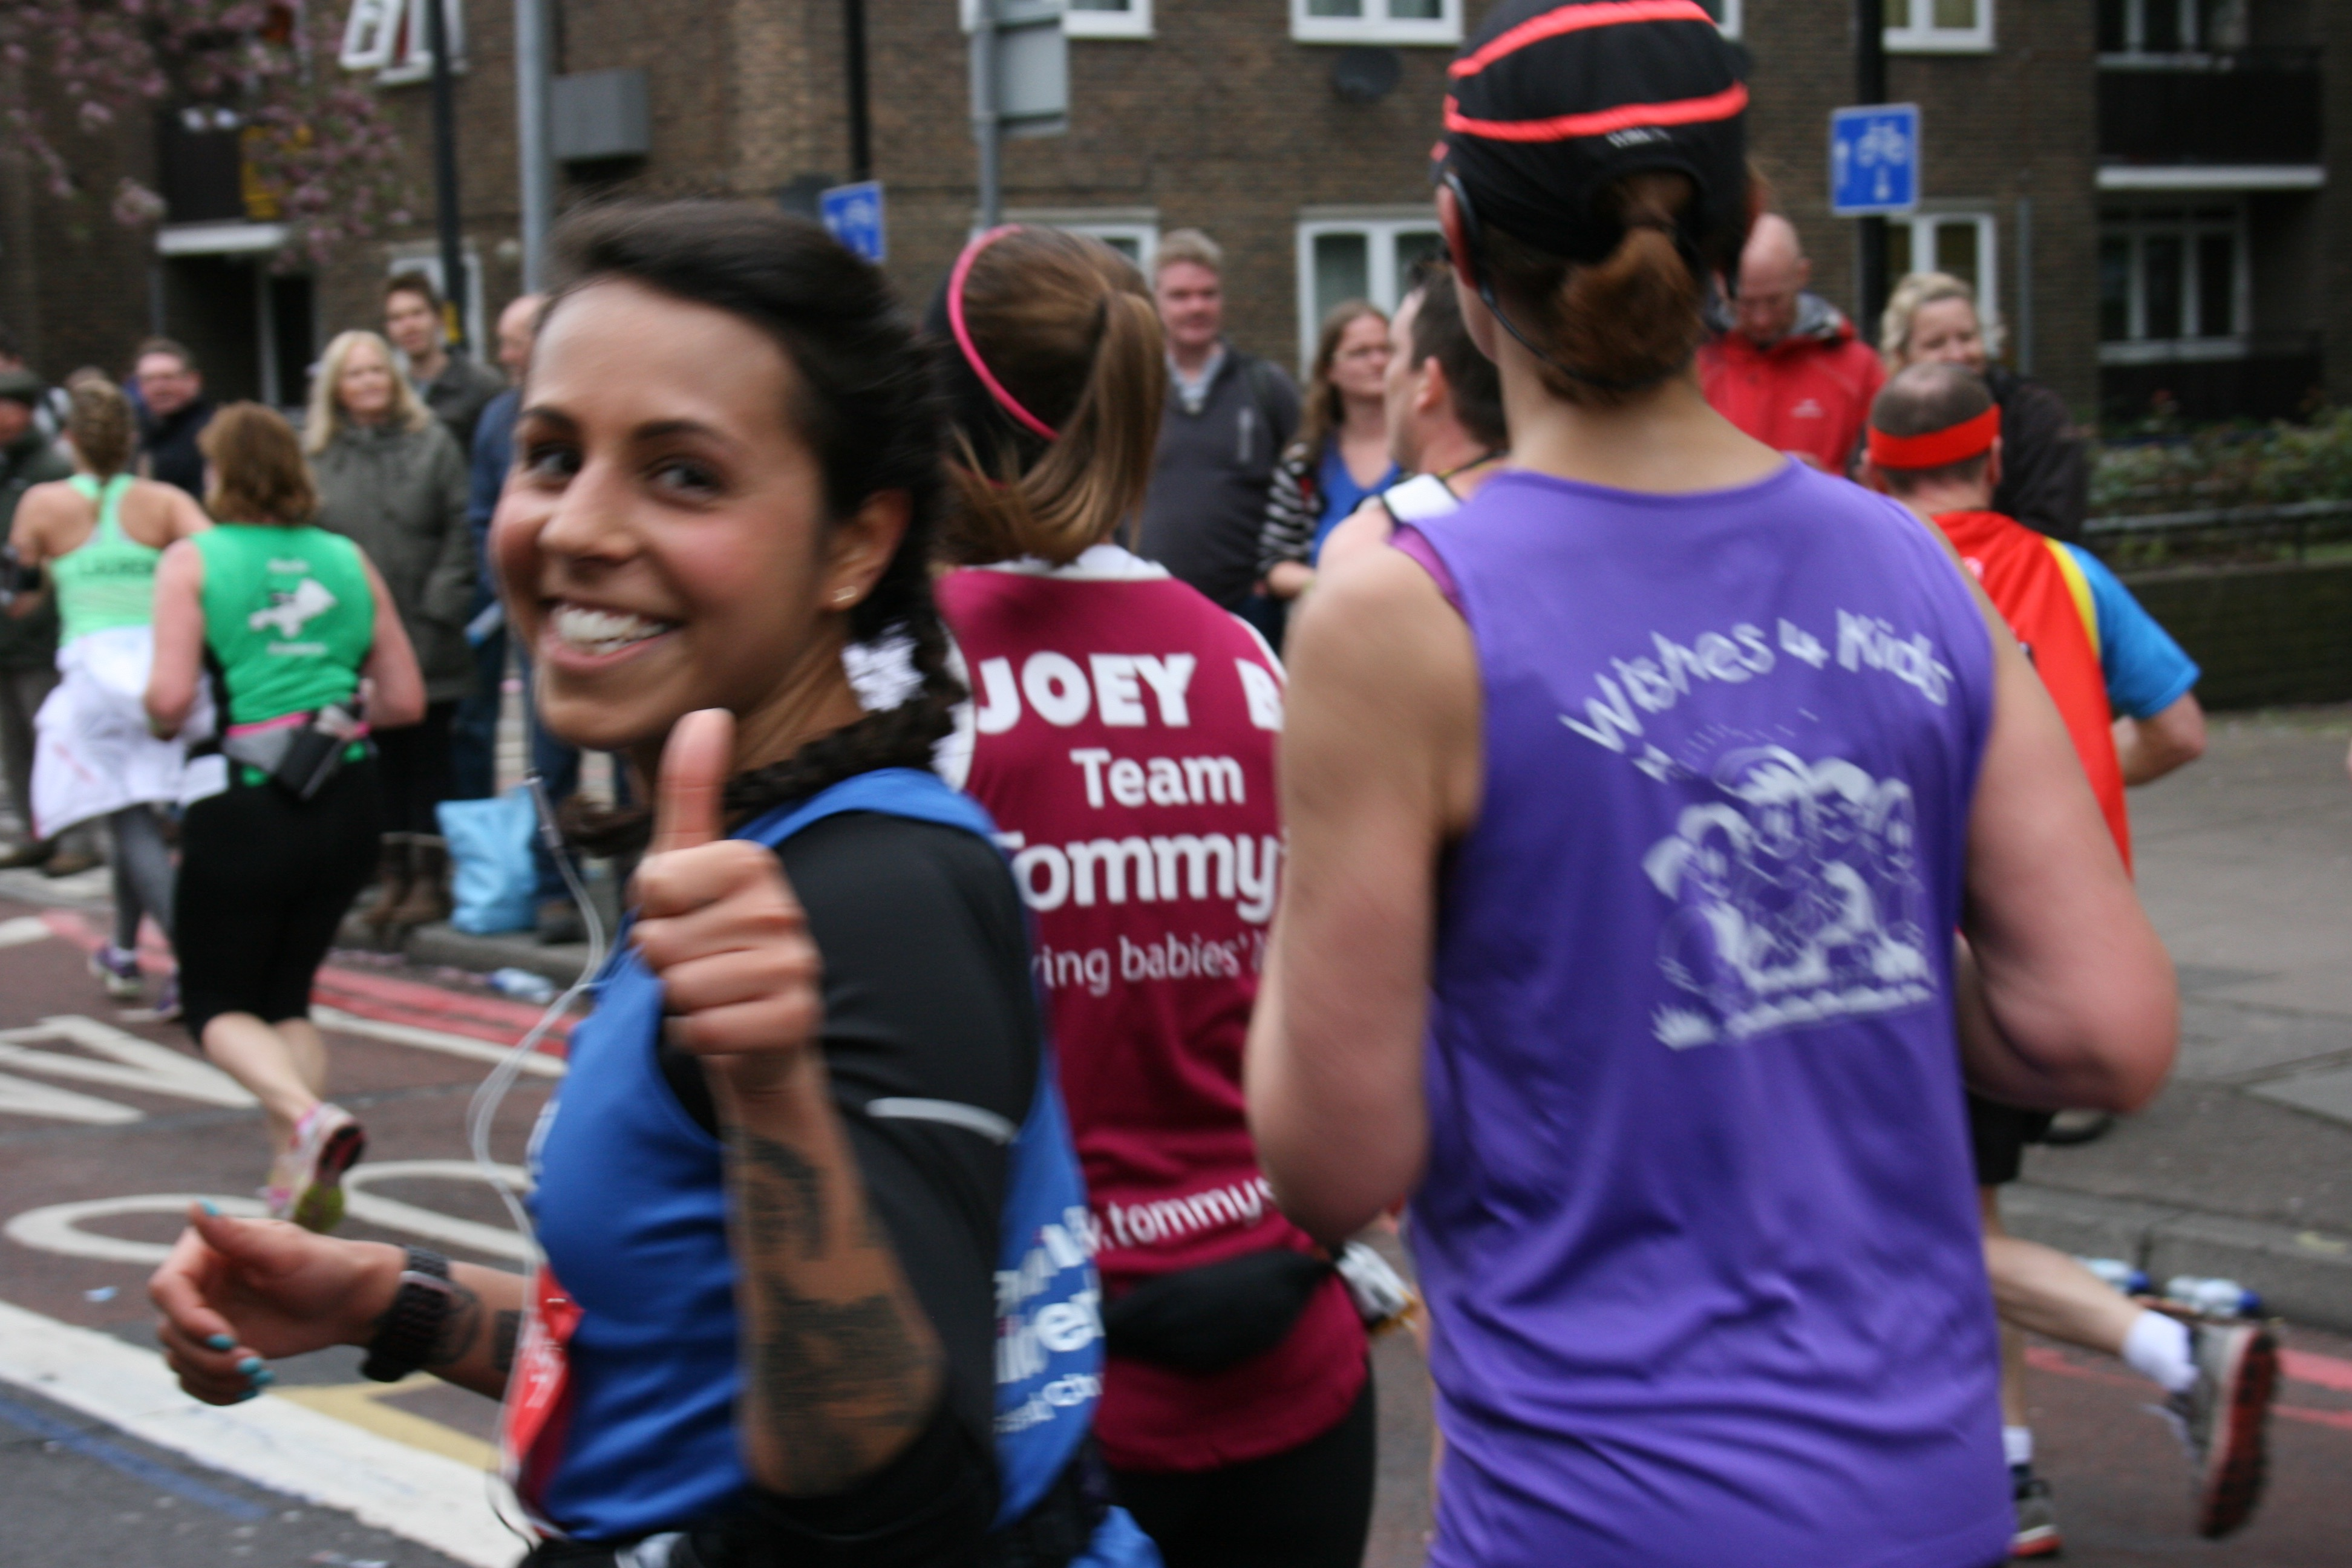 Previous Marathon Runner giving the thumbs up